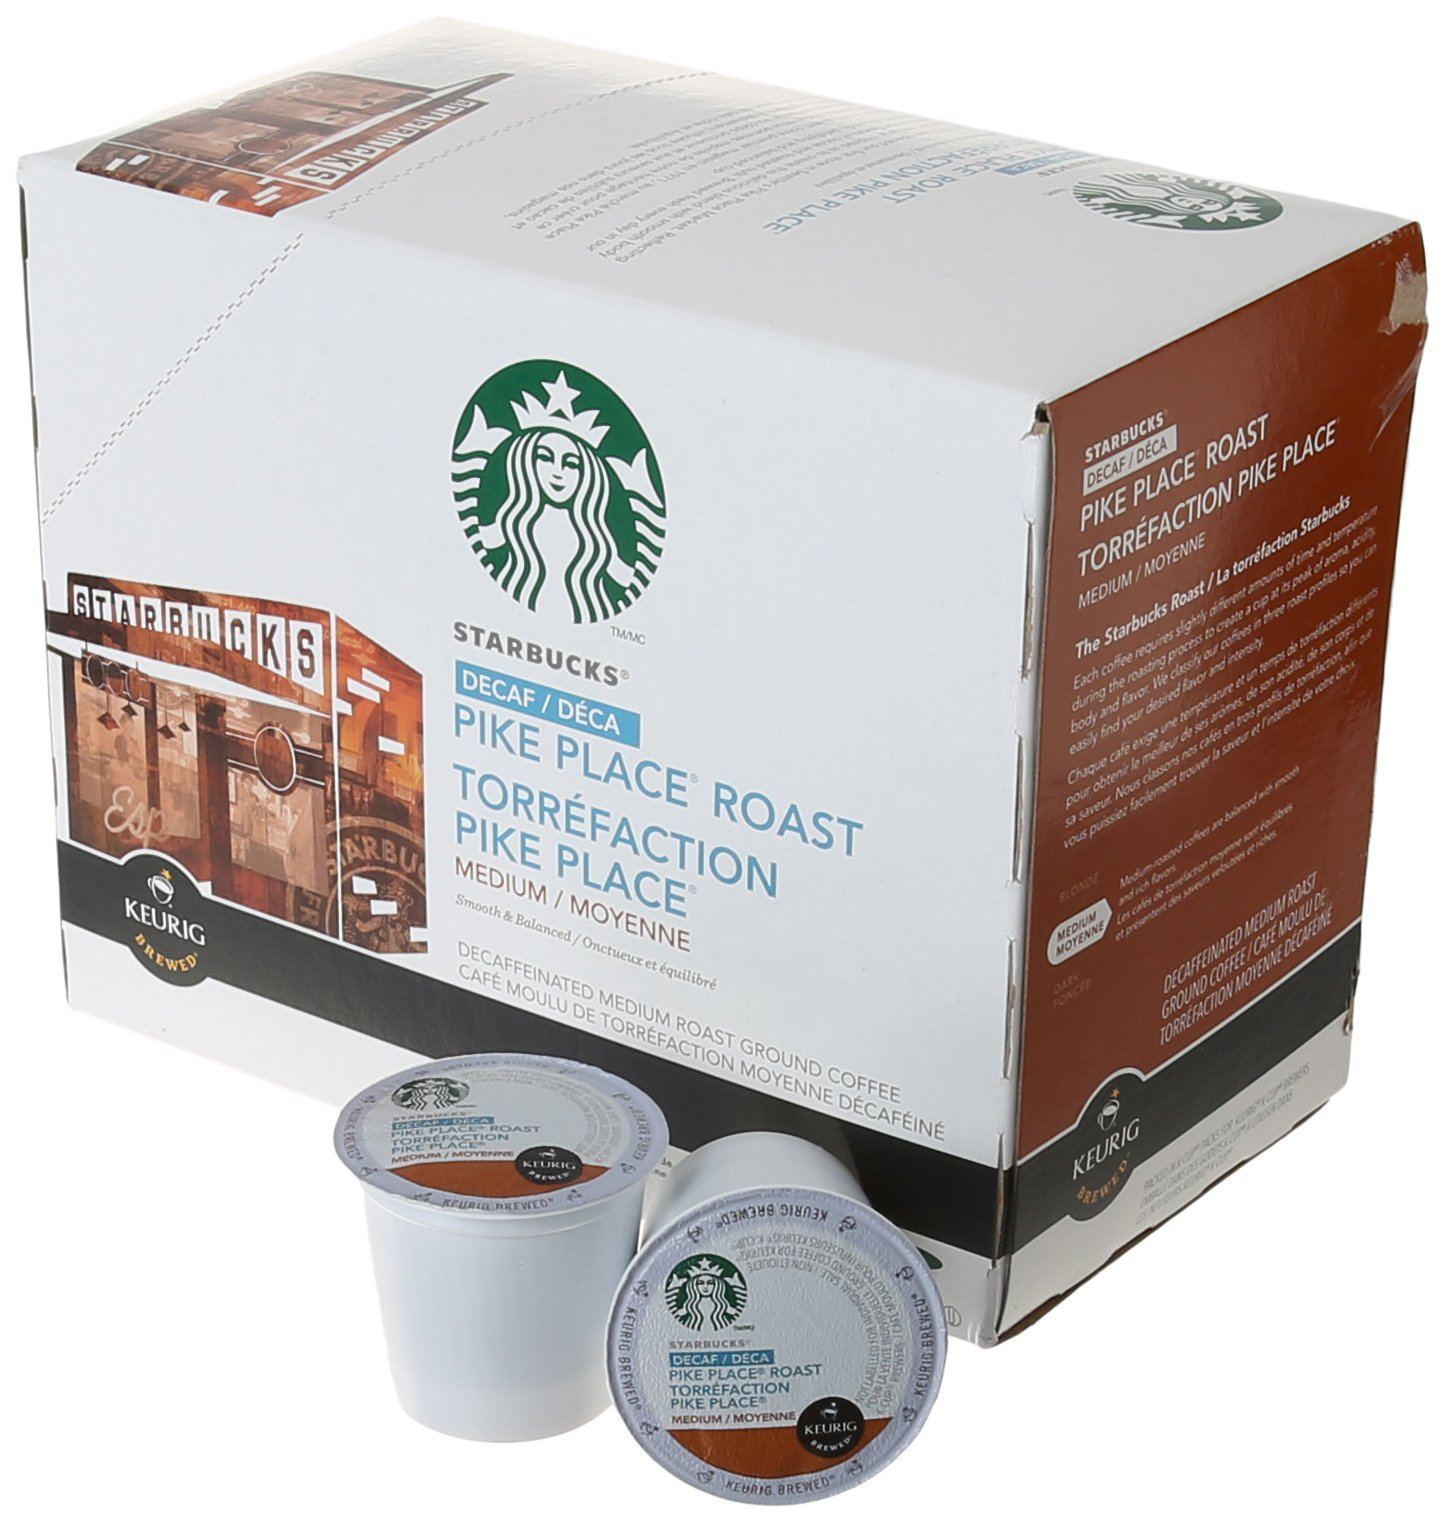 Starbucks Decaf Pike Place Roast K Cups, 24 Count (Pack of 2) by Starbucks (Image #2)